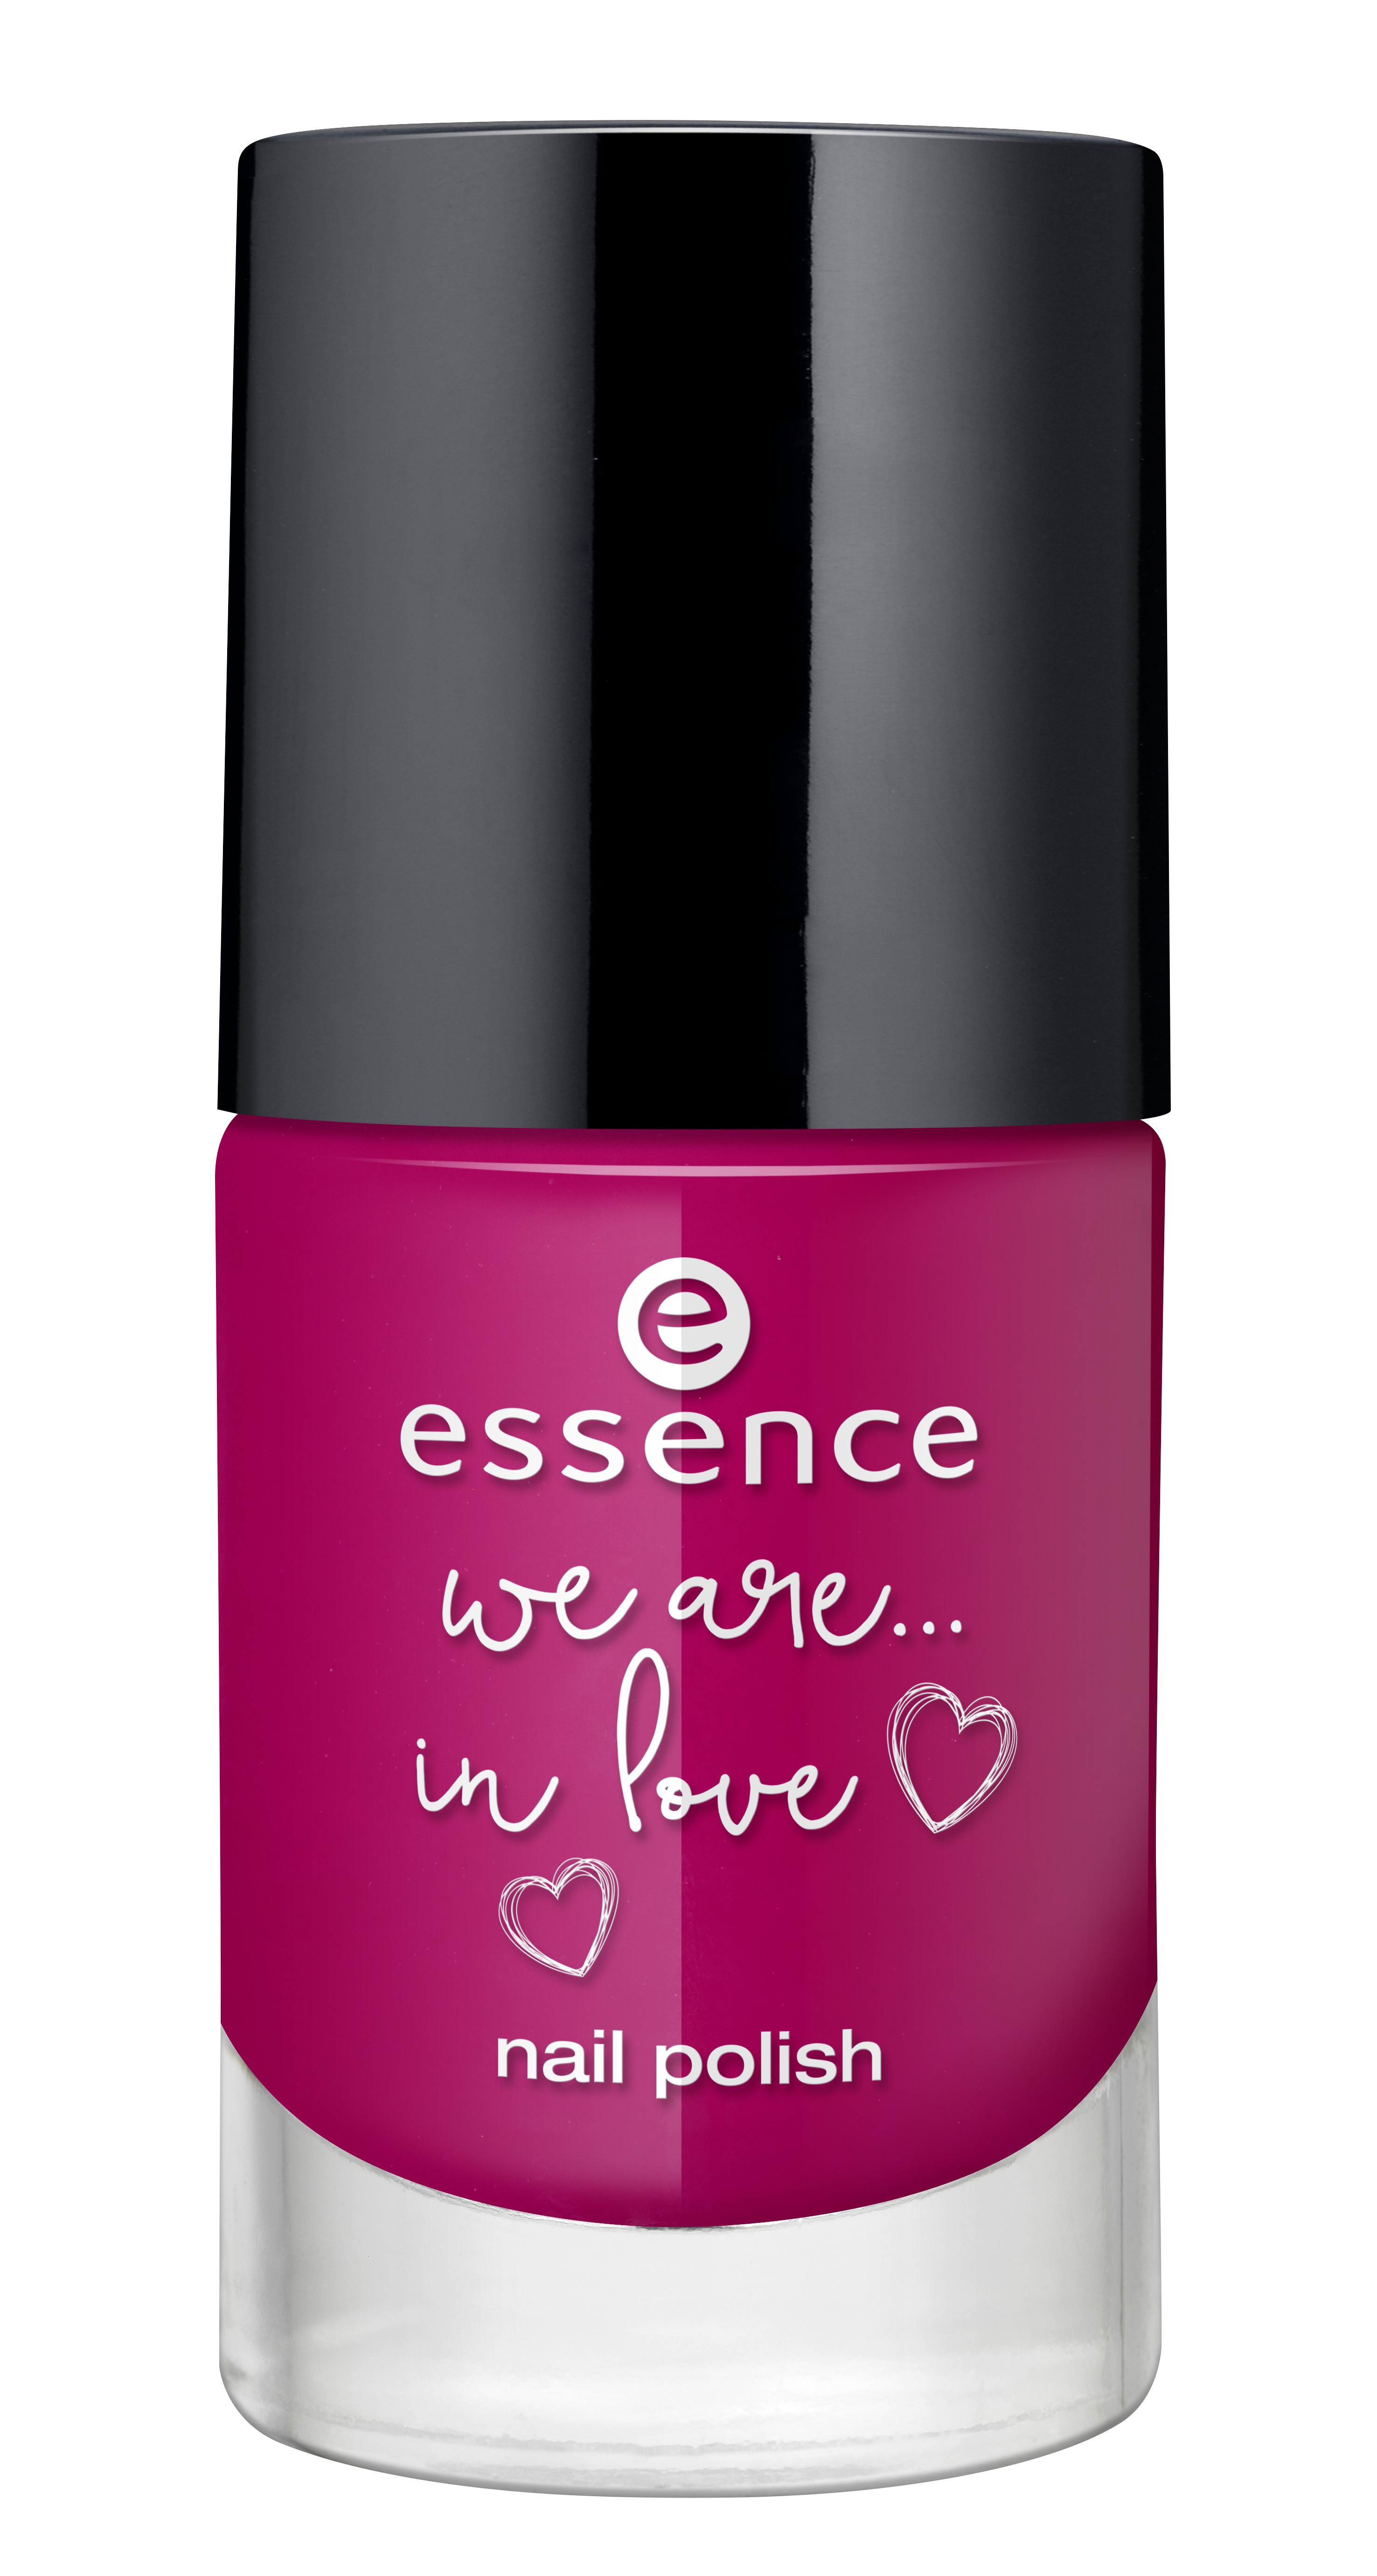 Essence Trend Edition 'We Are…..'